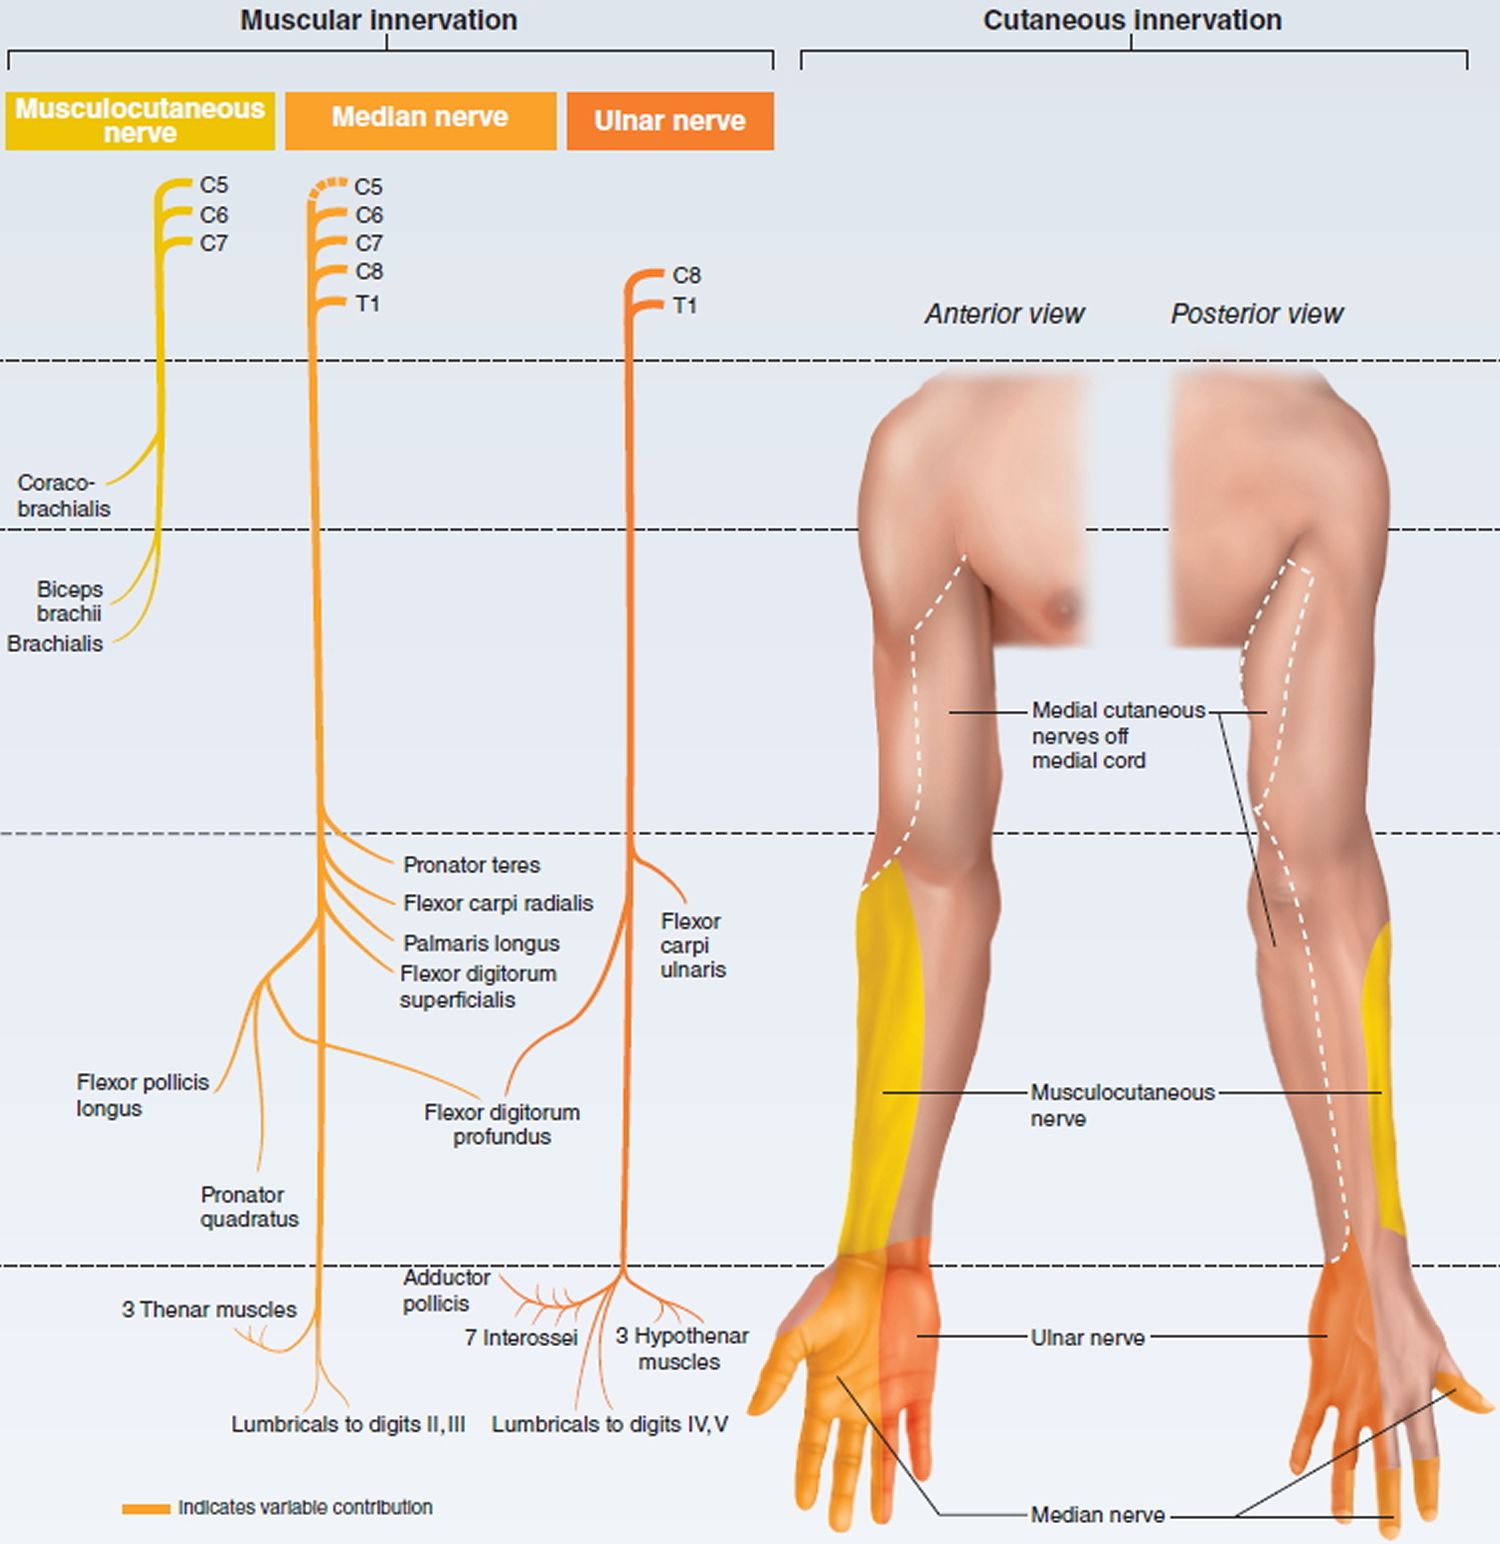 brachial plexus motor and sensory innervation of upper limb